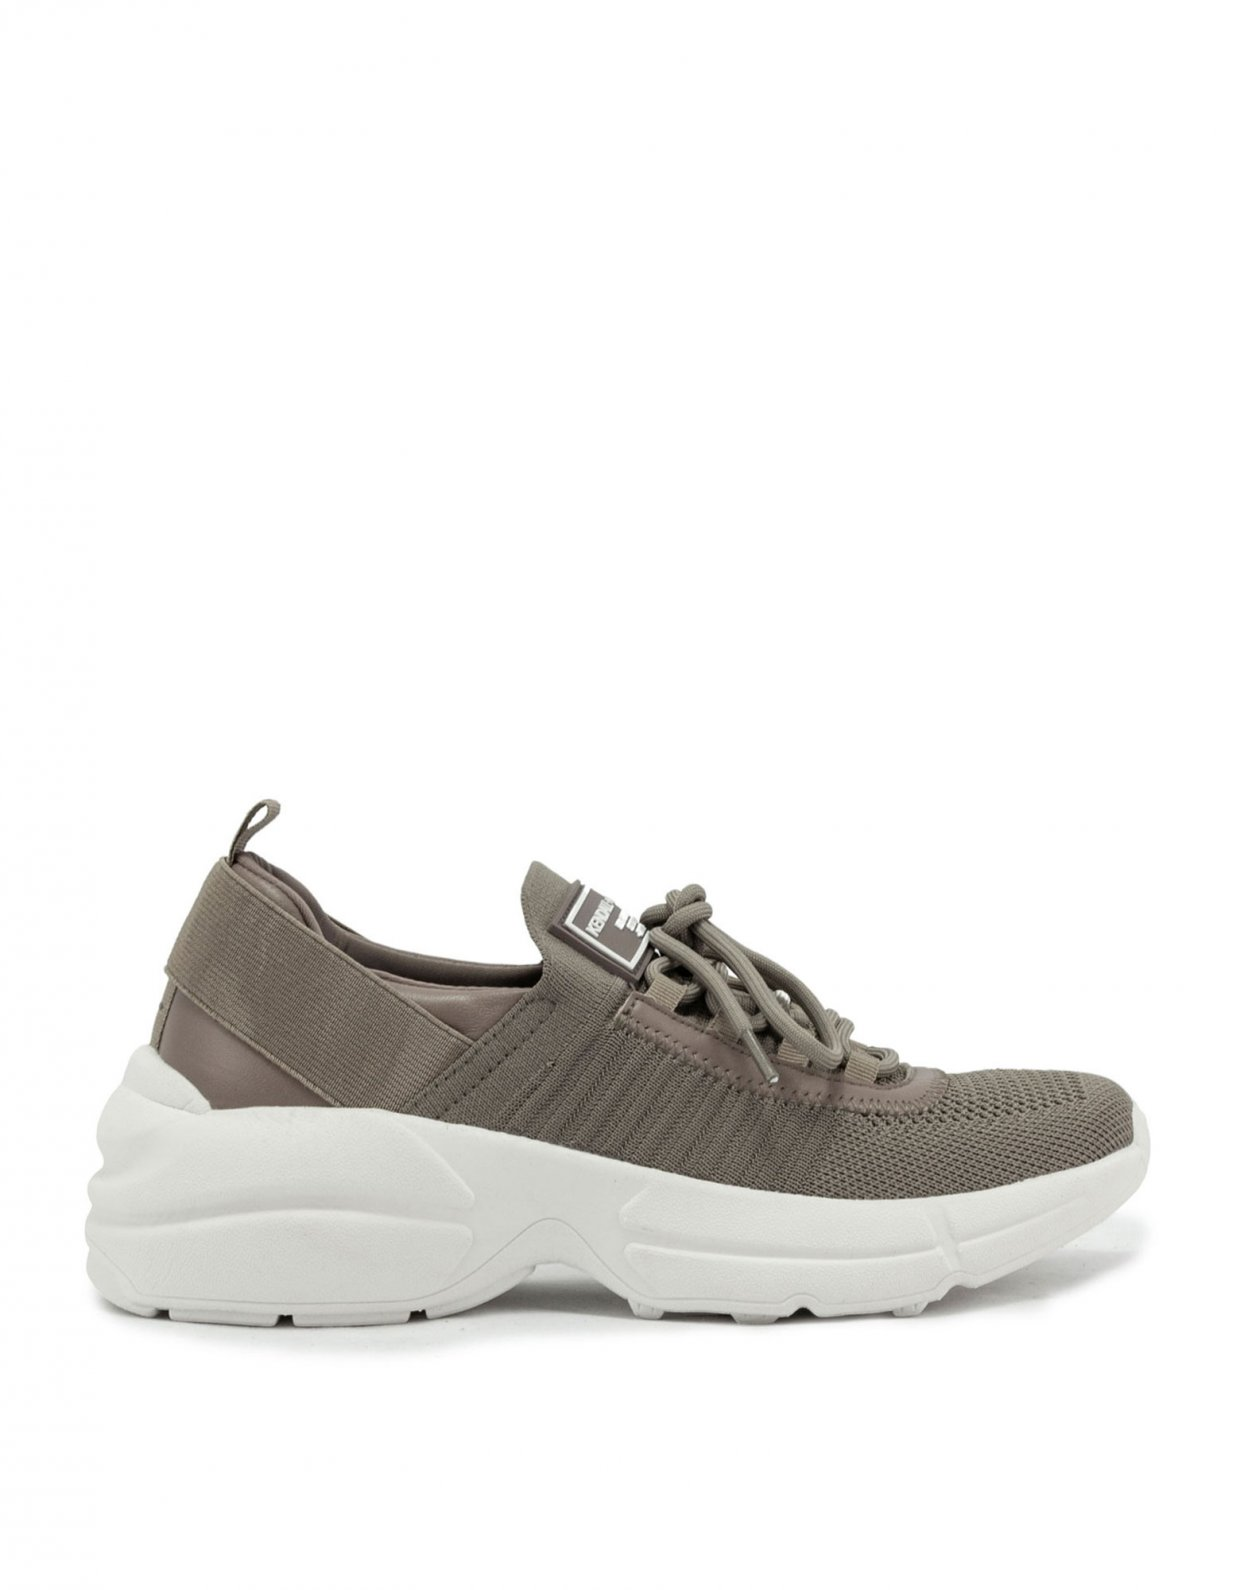 Kendall + Kylie Gleason taupe sneakers